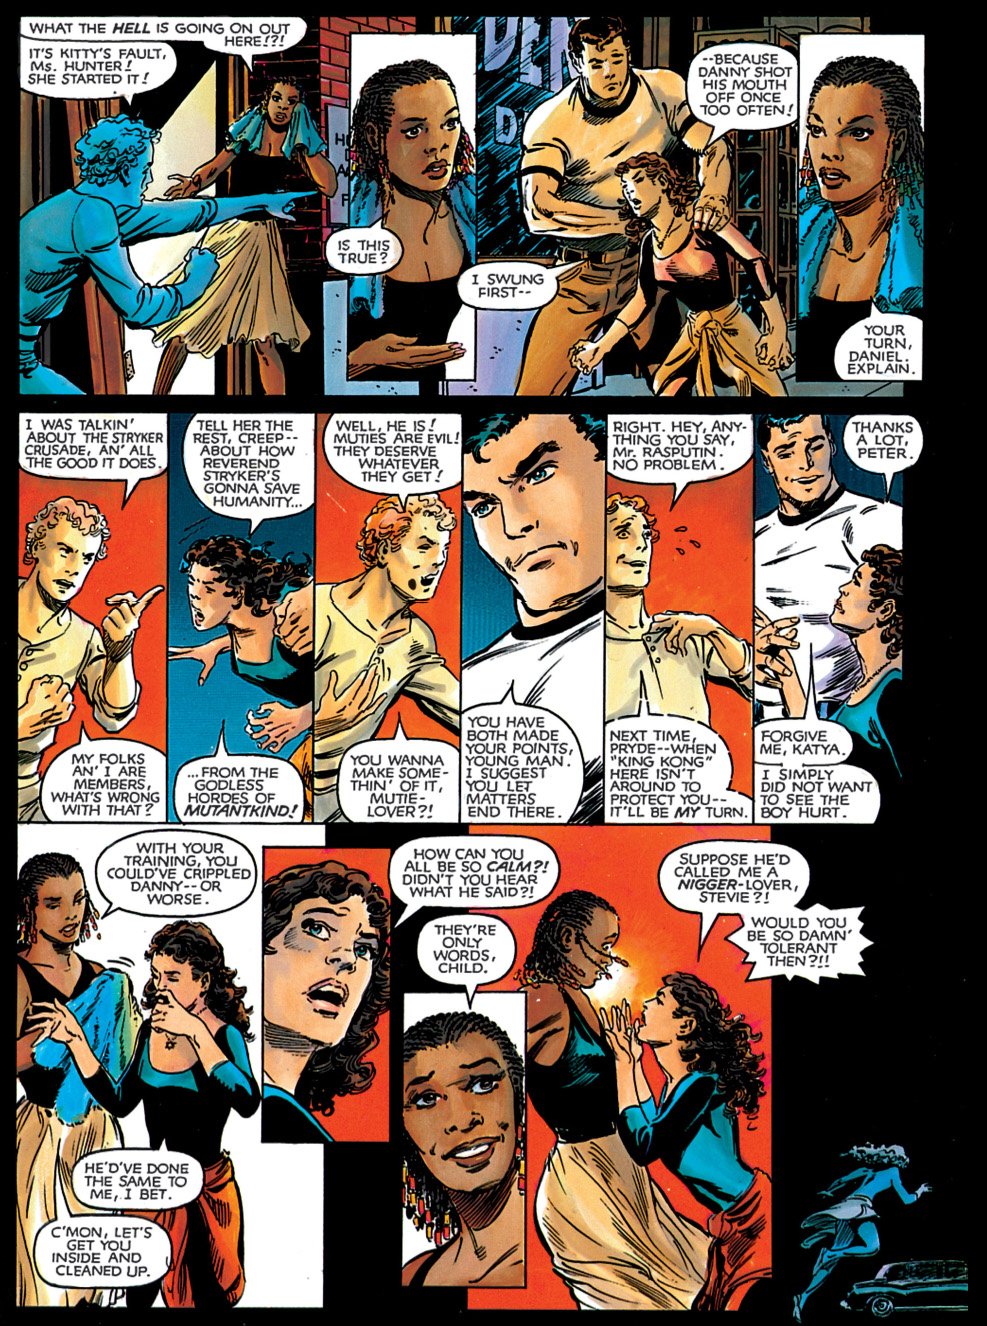 kitty pryde hates the word mutie-lover